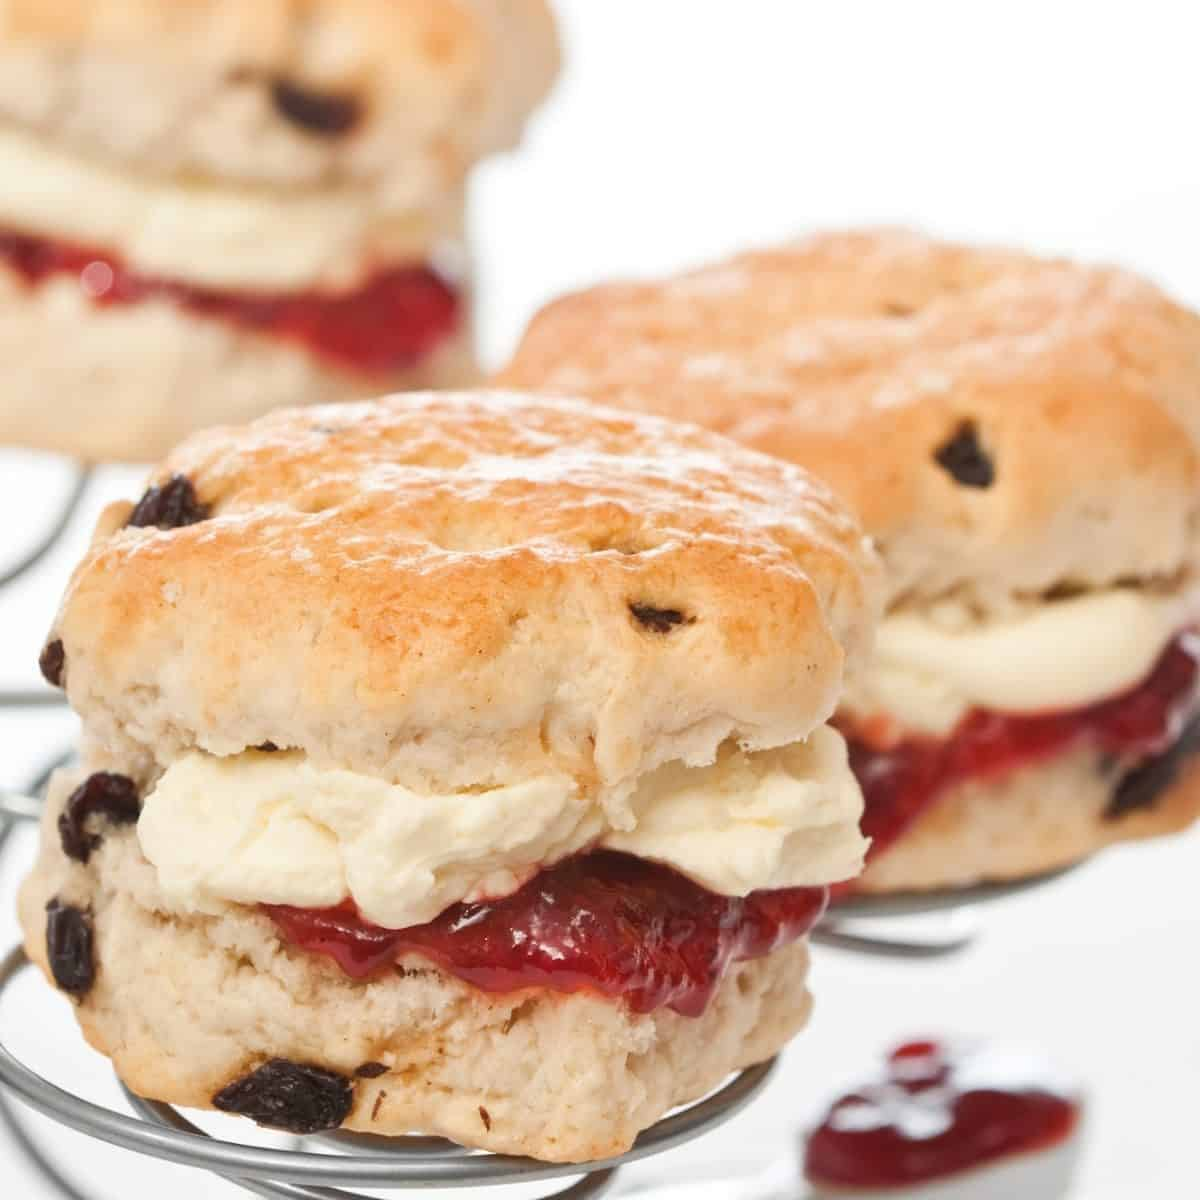 clotted cream and jam on a scone